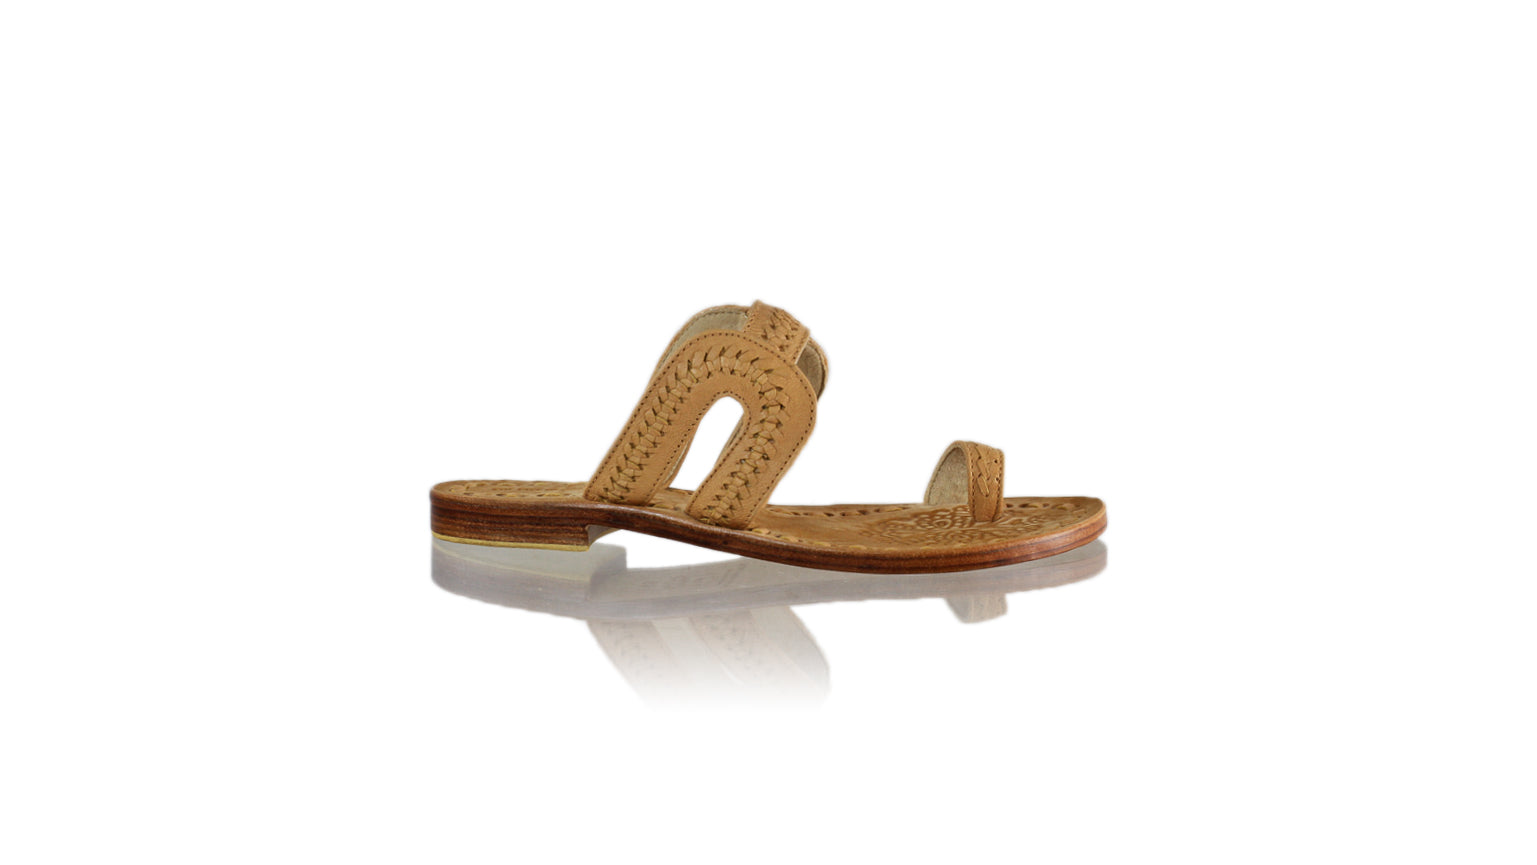 Leather-shoes-Andy 20mm Flat - Nude-sandals flat-NILUH DJELANTIK-NILUH DJELANTIK